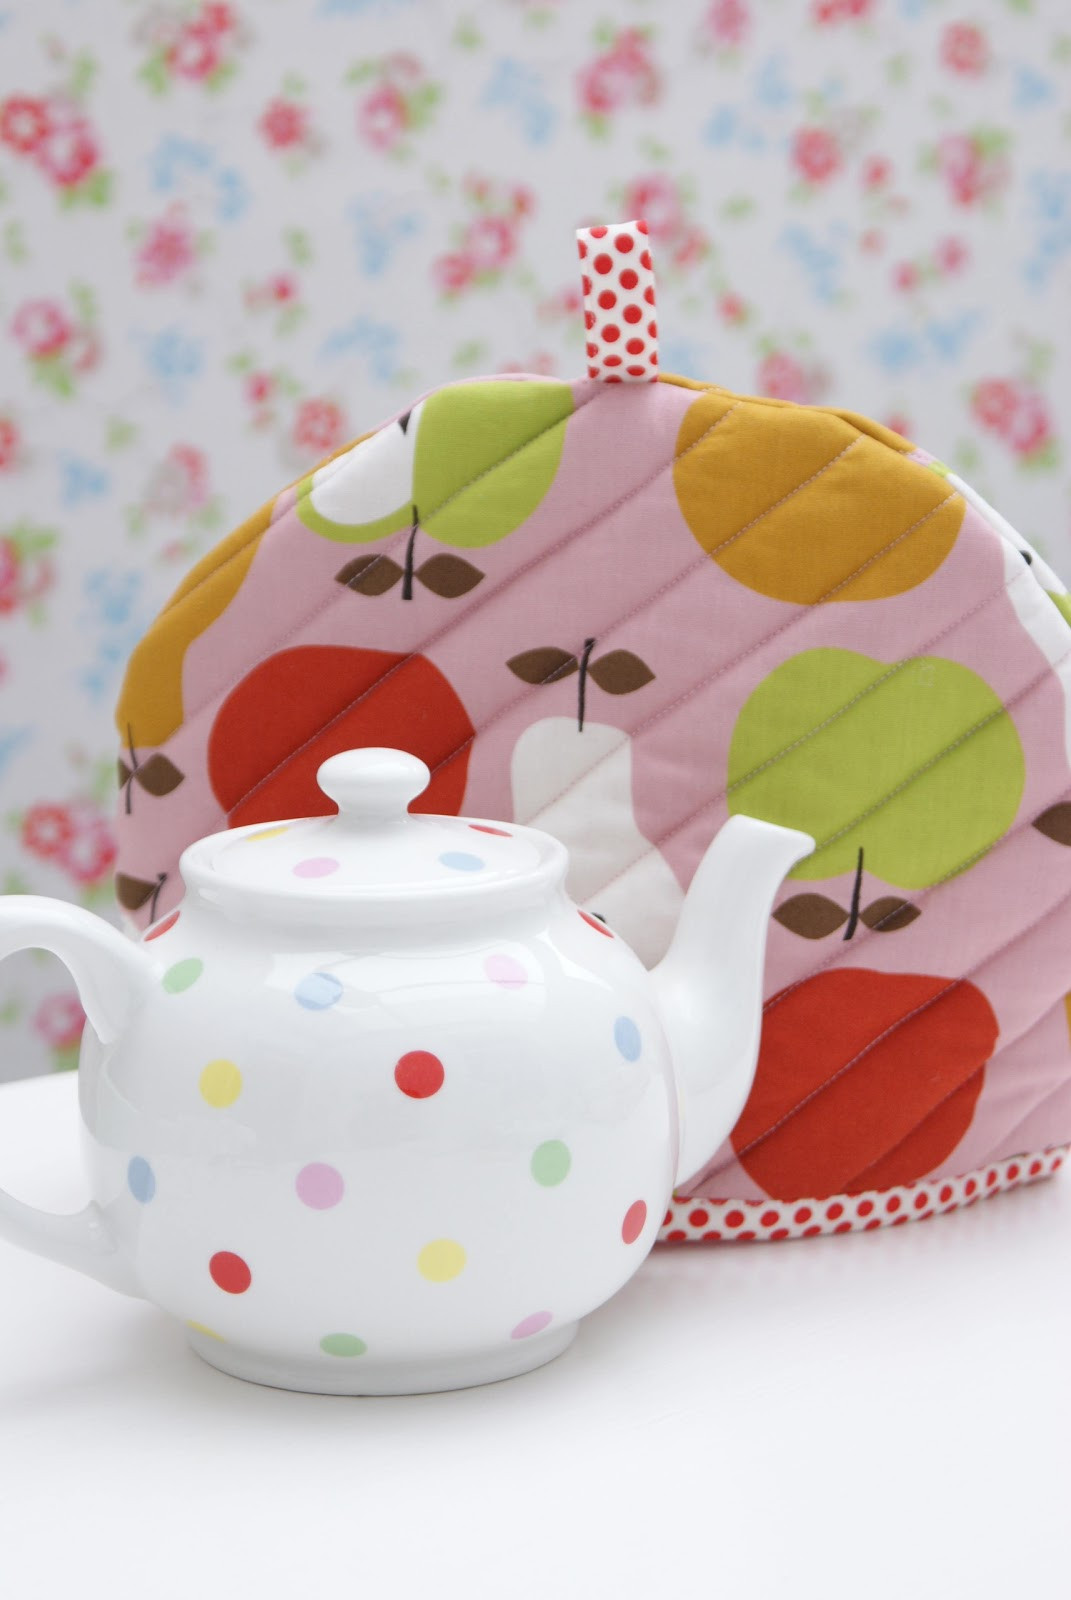 Tea Cozy Inspirational Messyjesse A Quilt Blog by Jessie Fincham Quilted Tea Of Amazing 46 Pics Tea Cozy